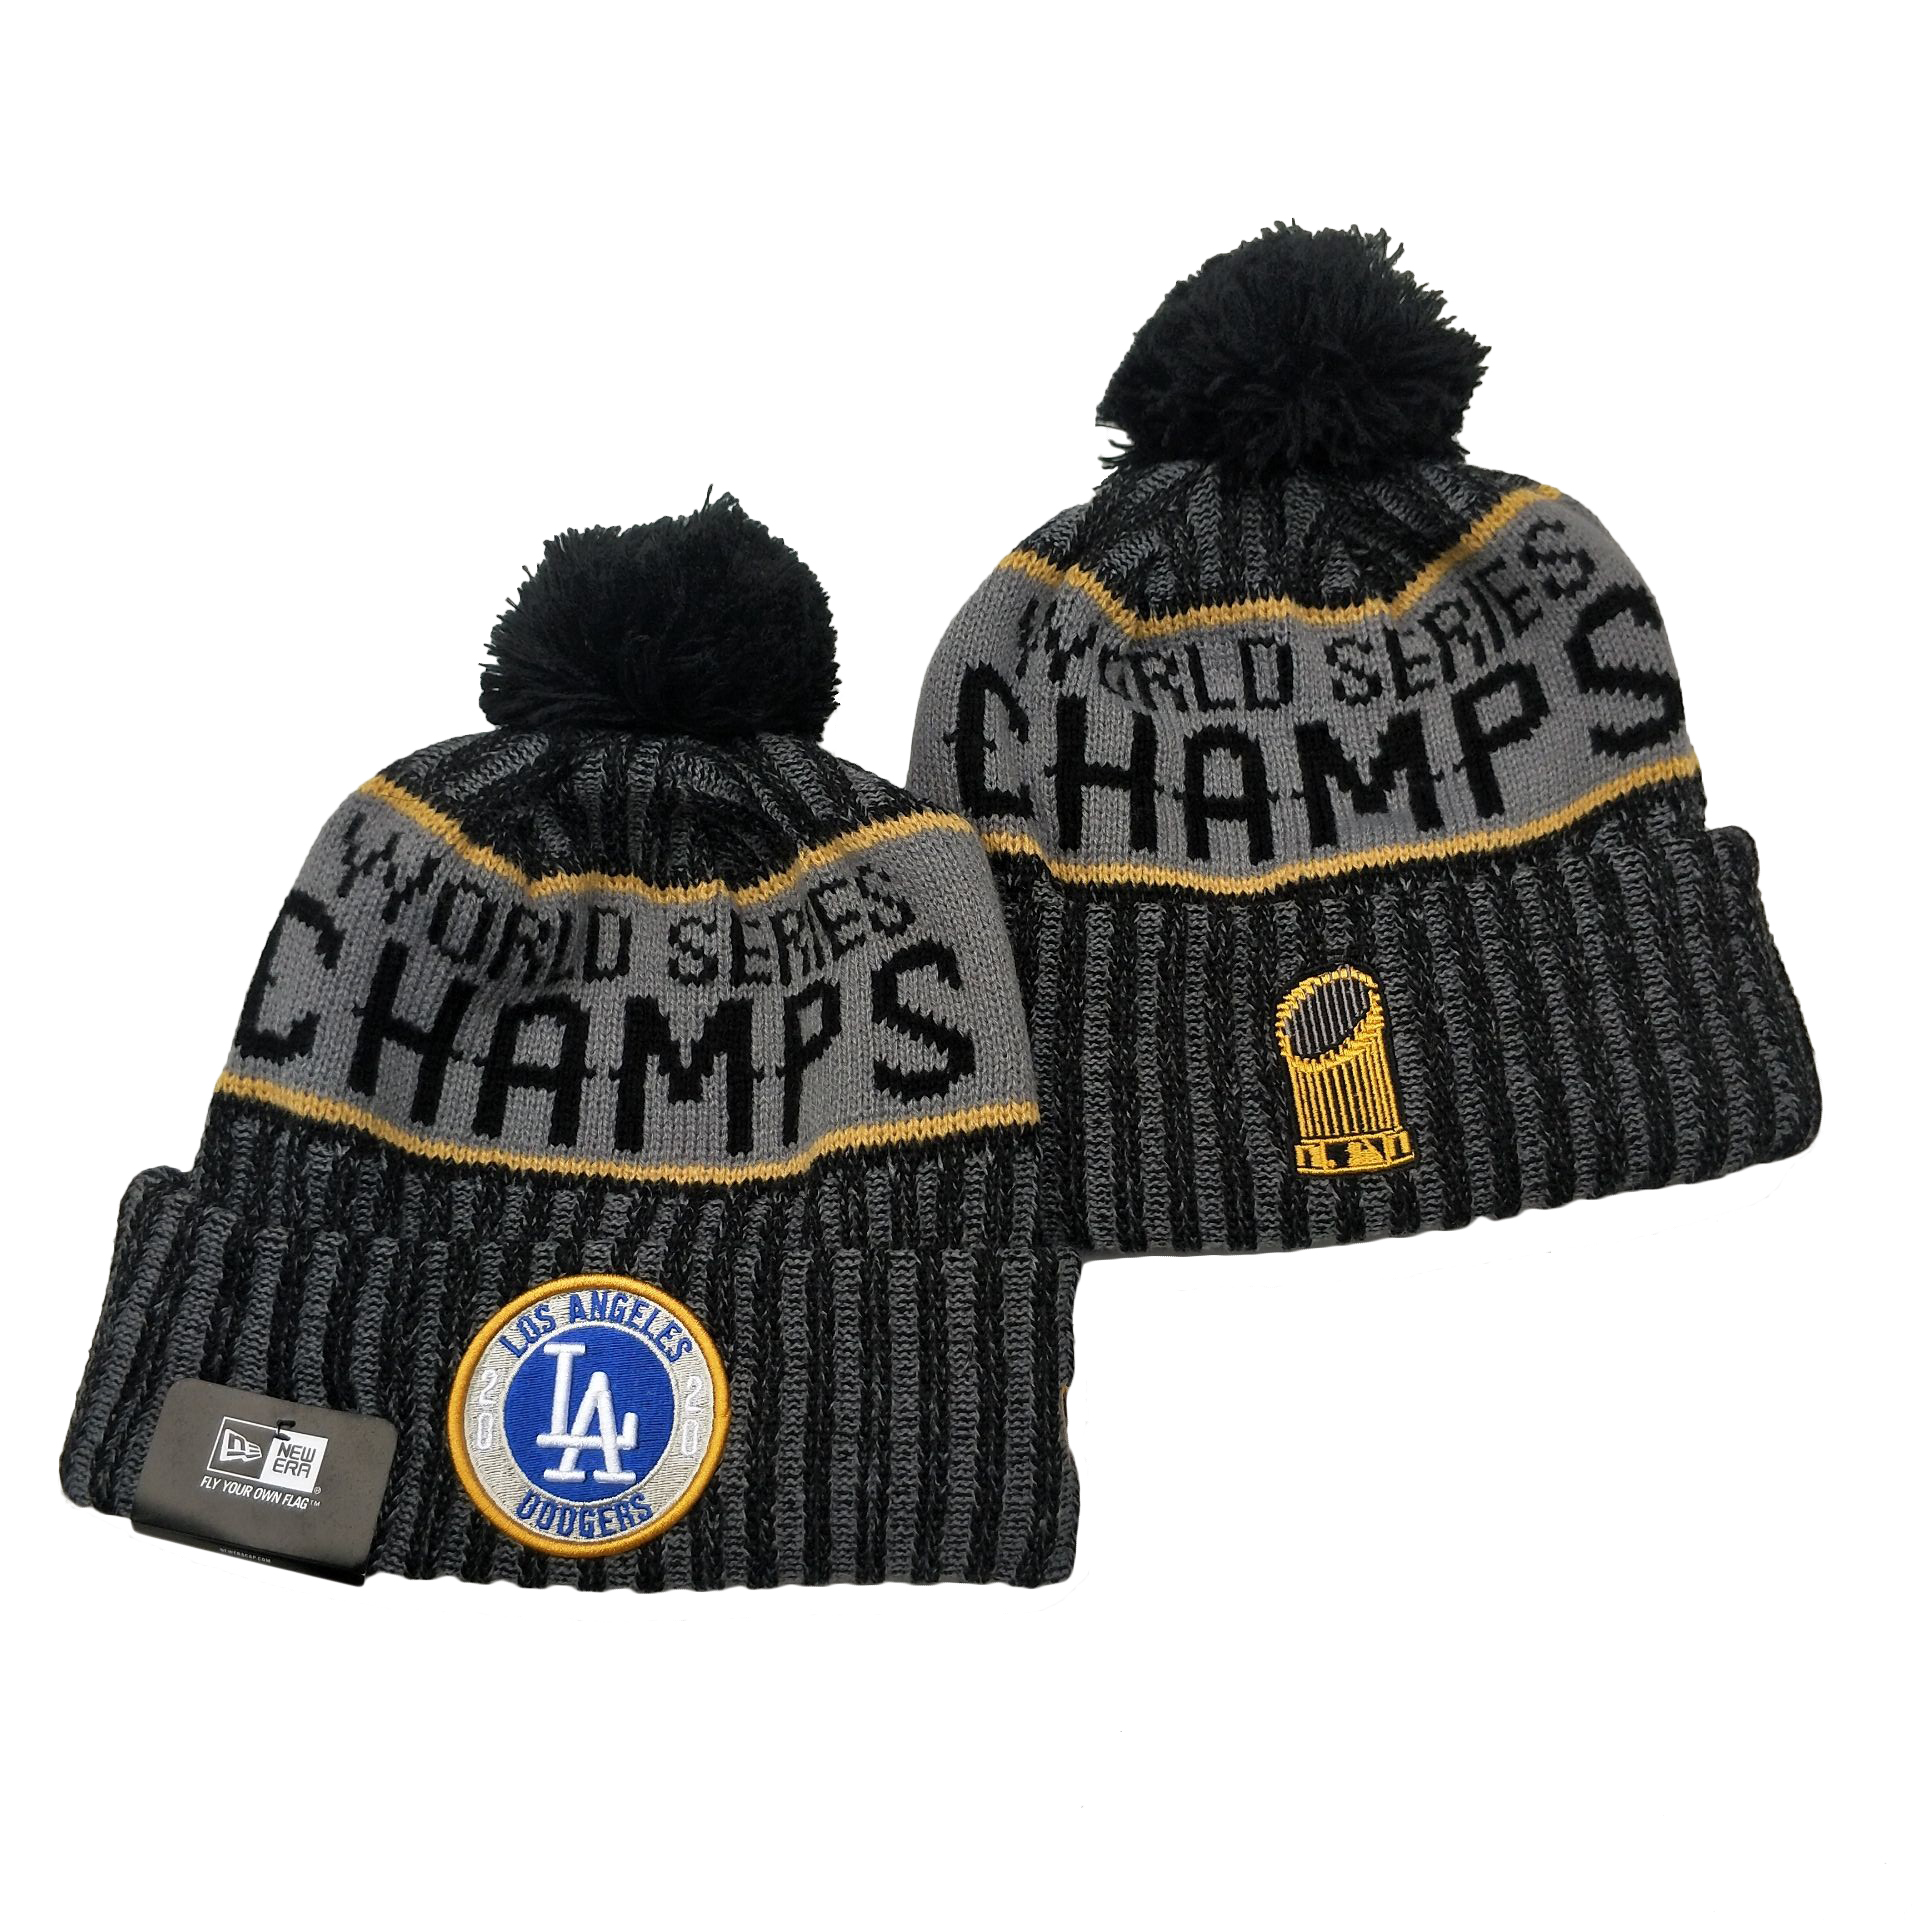 Dodgers Team Logo Gray 2020 World Series Champions Cuffed Pom Knit Hat YD